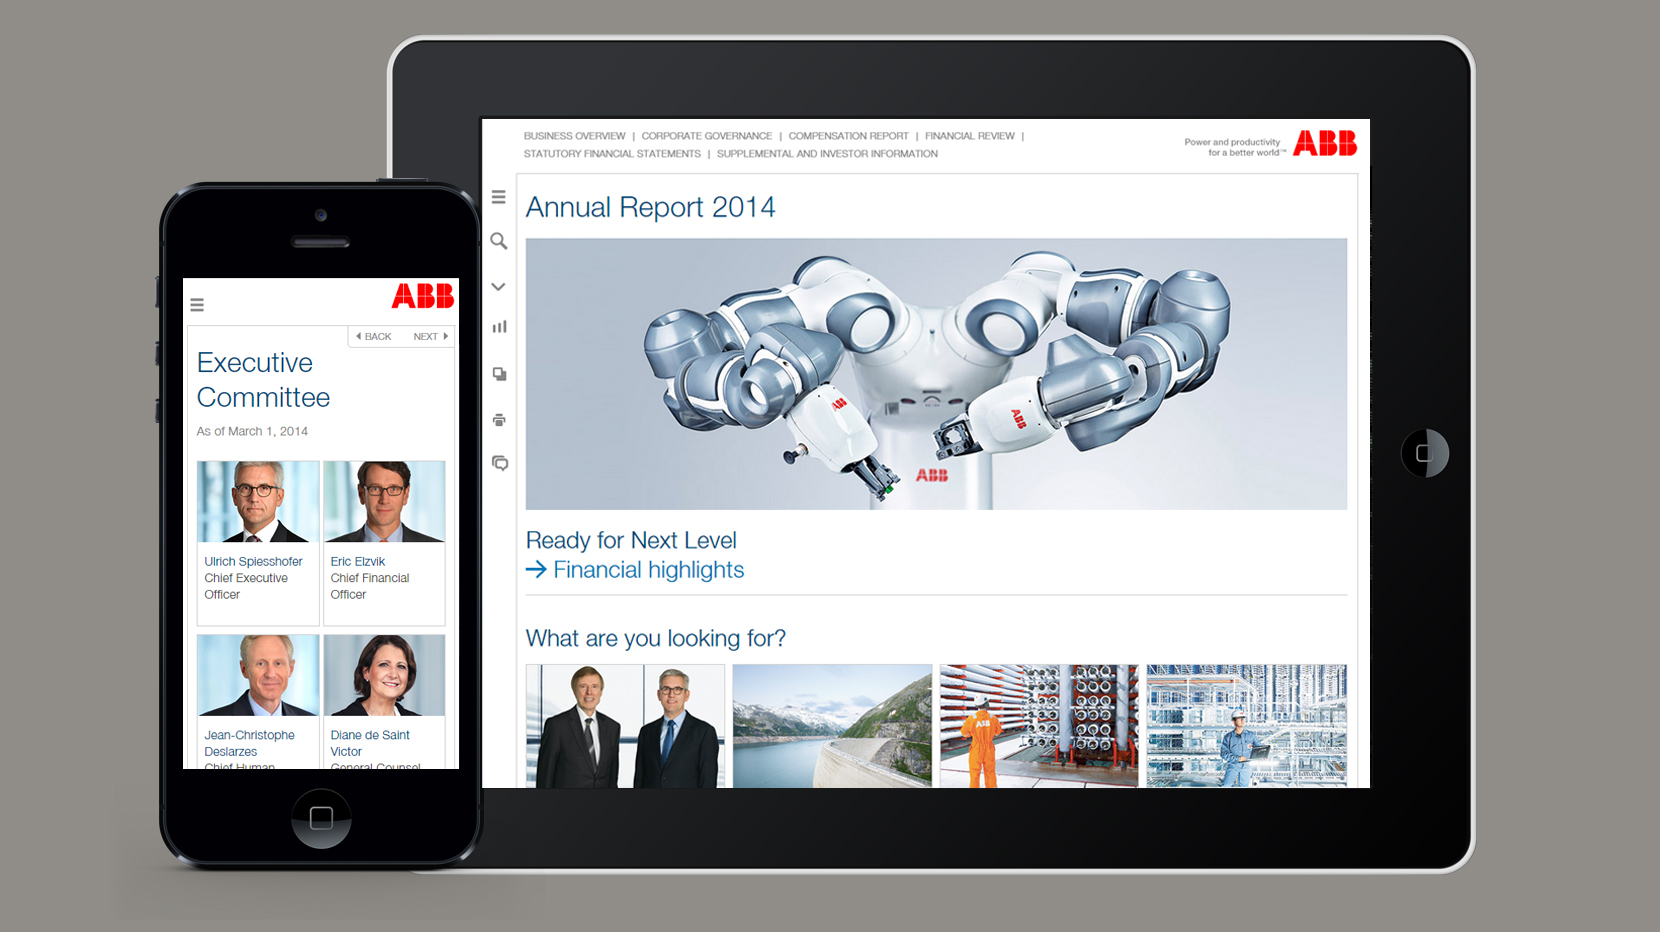 ABB Online Annual Report 2014